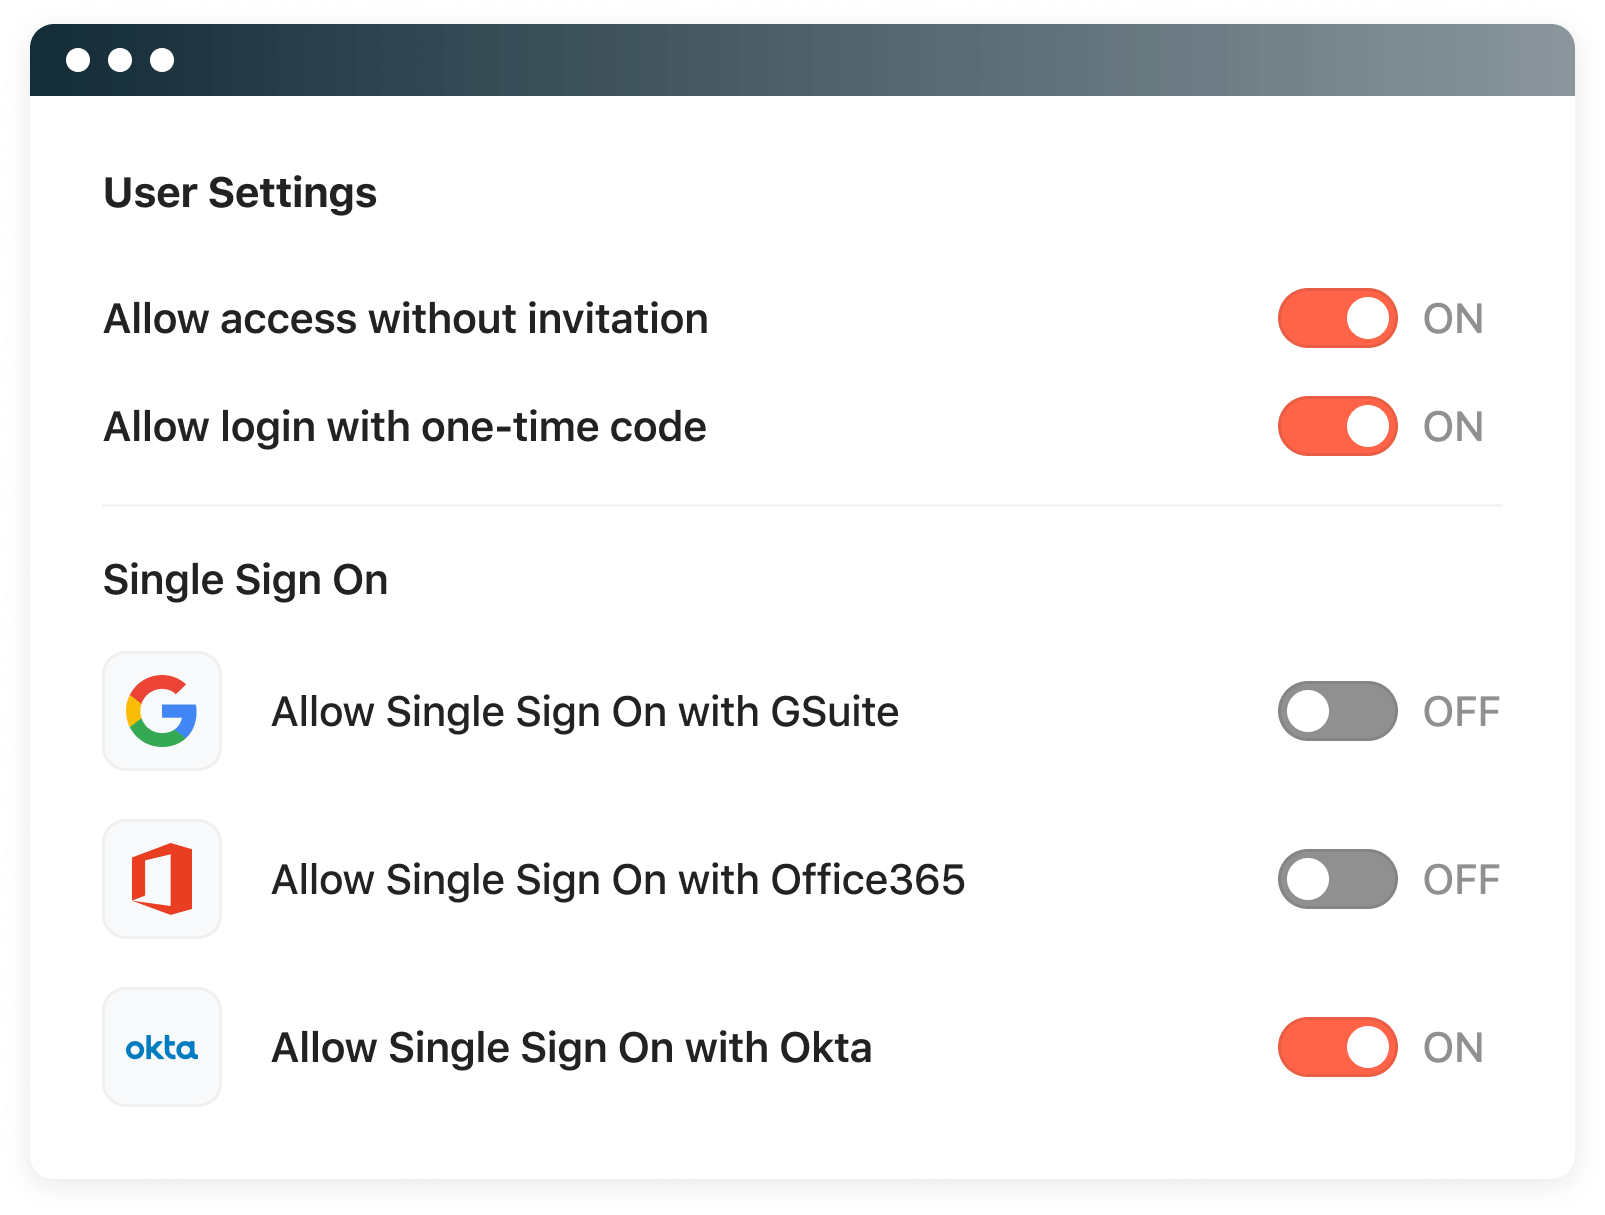 Use your Google, O365, or Okta login to sign on to Airbase.